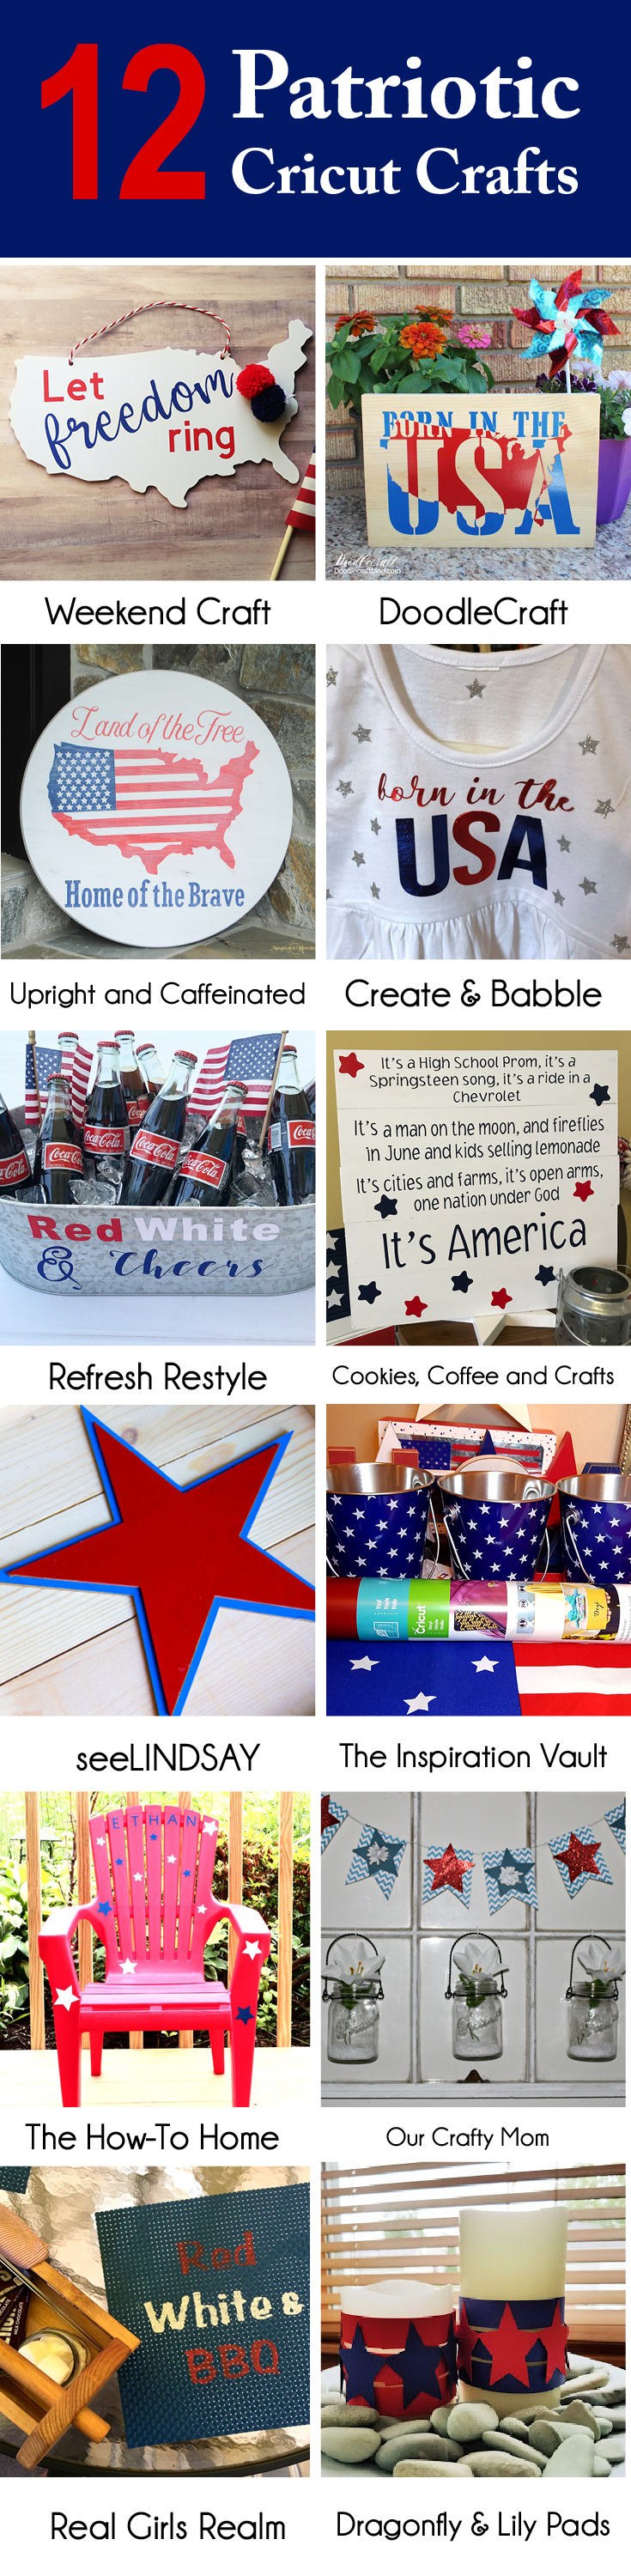 12 Patriotic Cricut Crafts